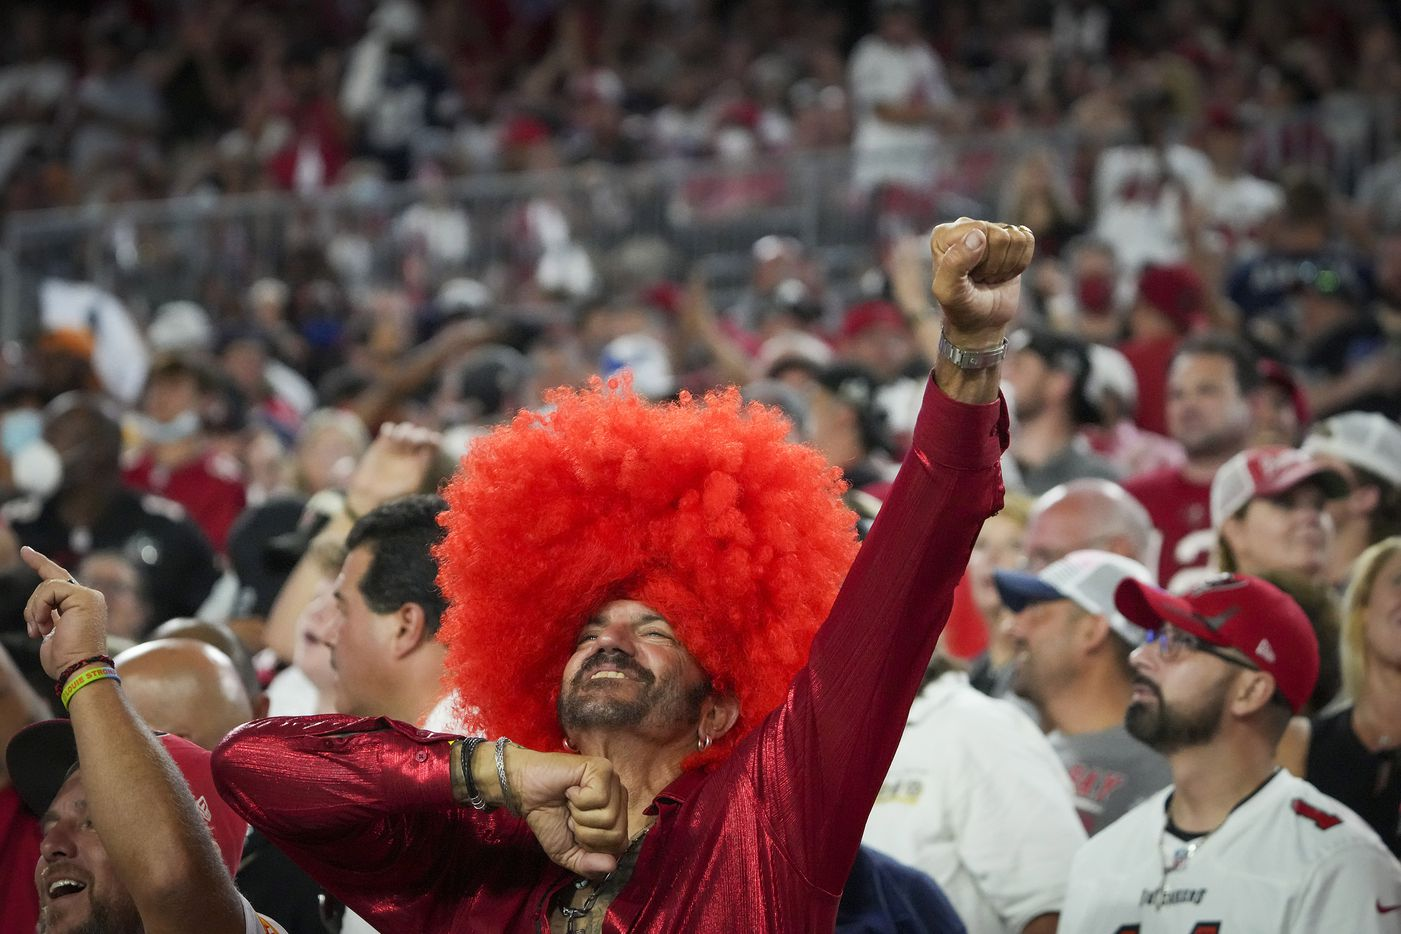 Tampa Bay Buccaneers fans celebrate after Dallas Cowboys place kicker Greg Zuerlein missed a point after attempt during the first half of an NFL football game at Raymond James Stadium on Thursday, Sept. 9, 2021, in Tampa, Fla. (Smiley N. Pool/The Dallas Morning News)